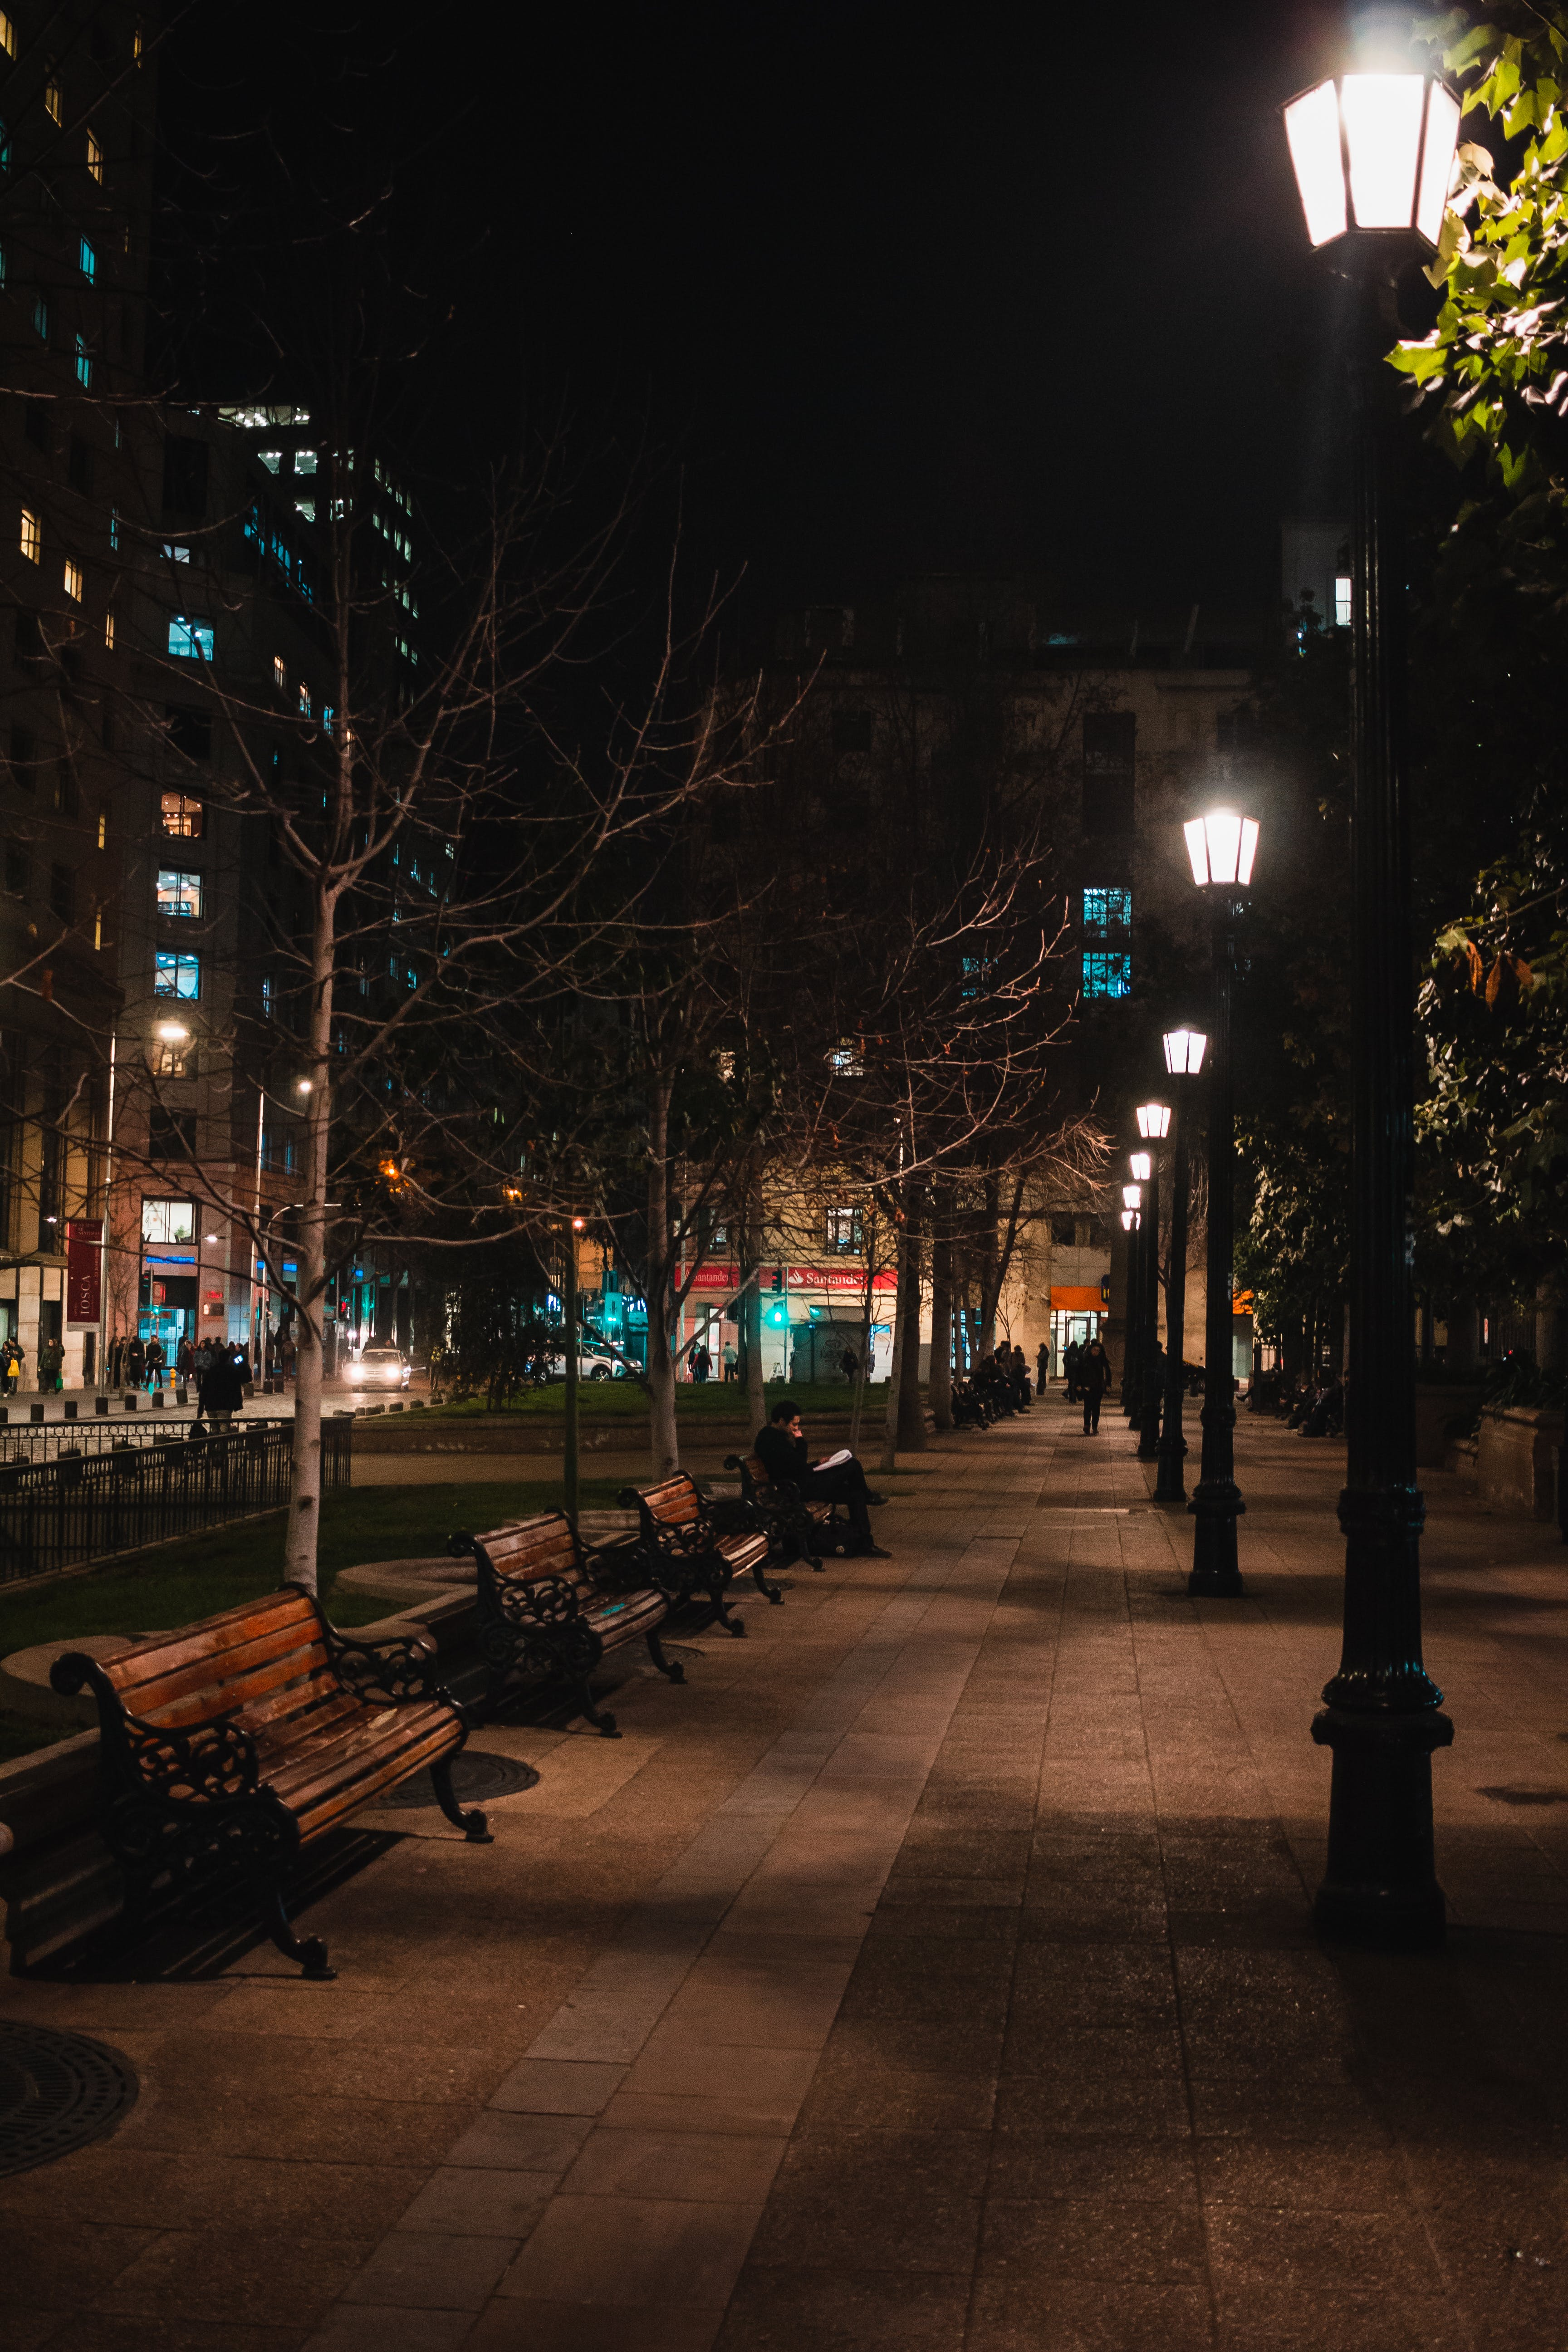 Lighted Post Lamps at Night